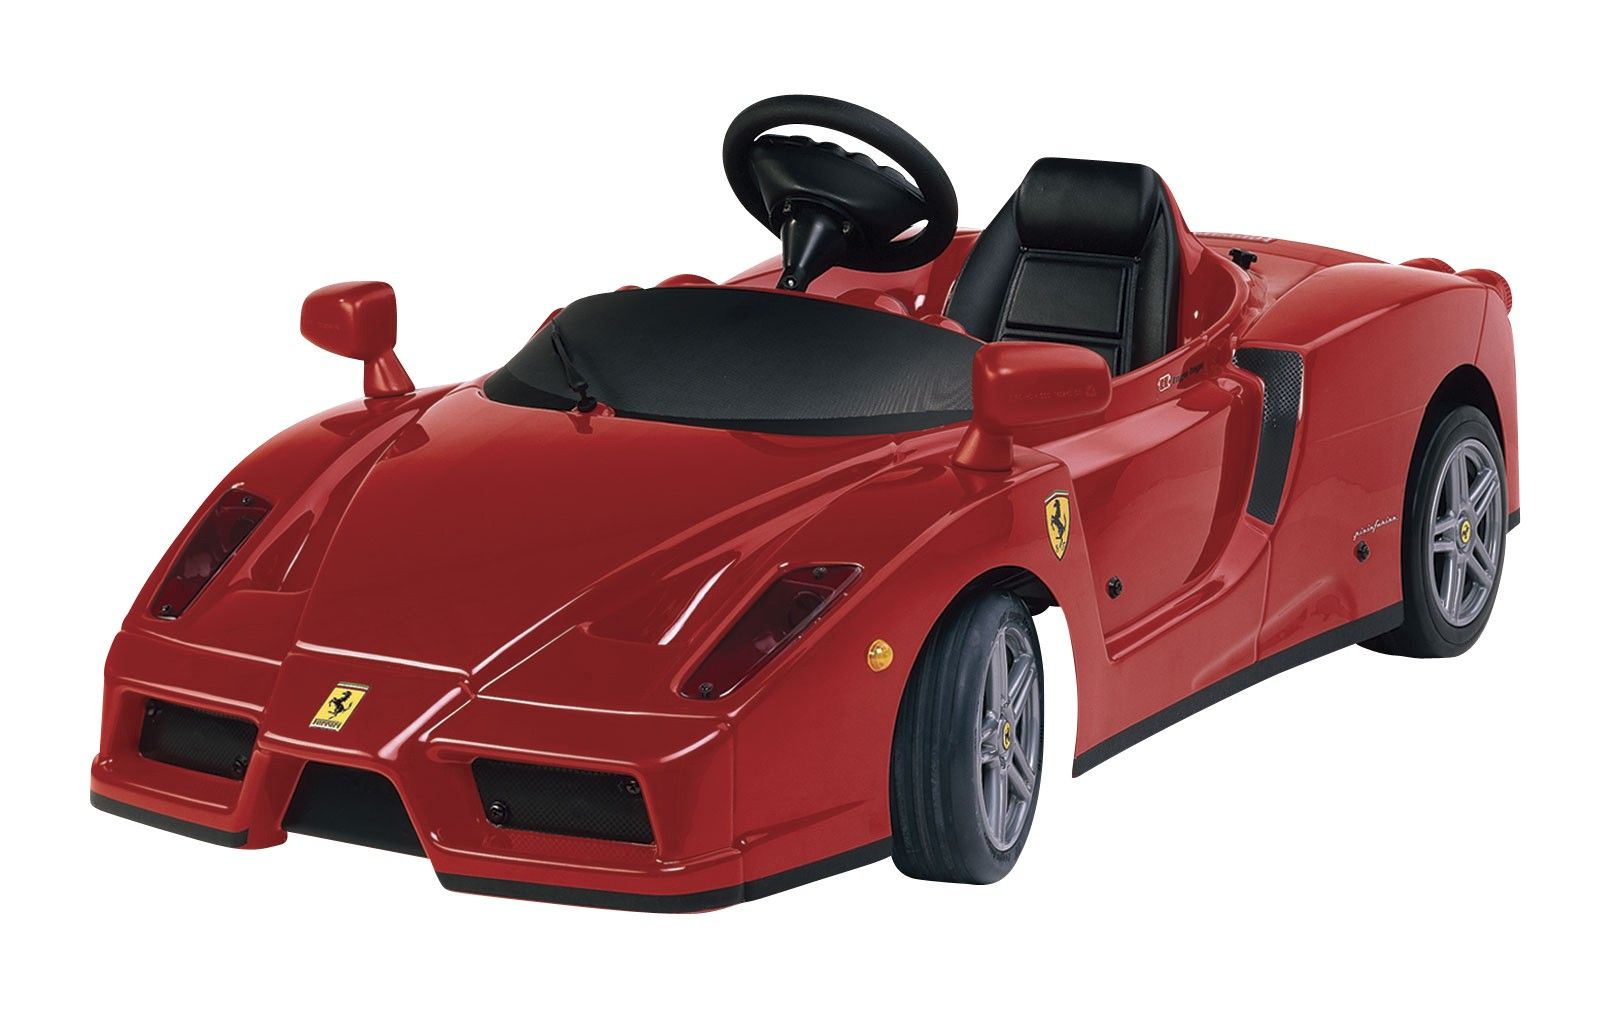 Kids Cars 12v Enzo Ferrari Age Suitable For Ages 4 And Under Made In Italy These Toys Toys Aka Berchet Toy Cars For Kids Ride On Toys Battery Powered Car